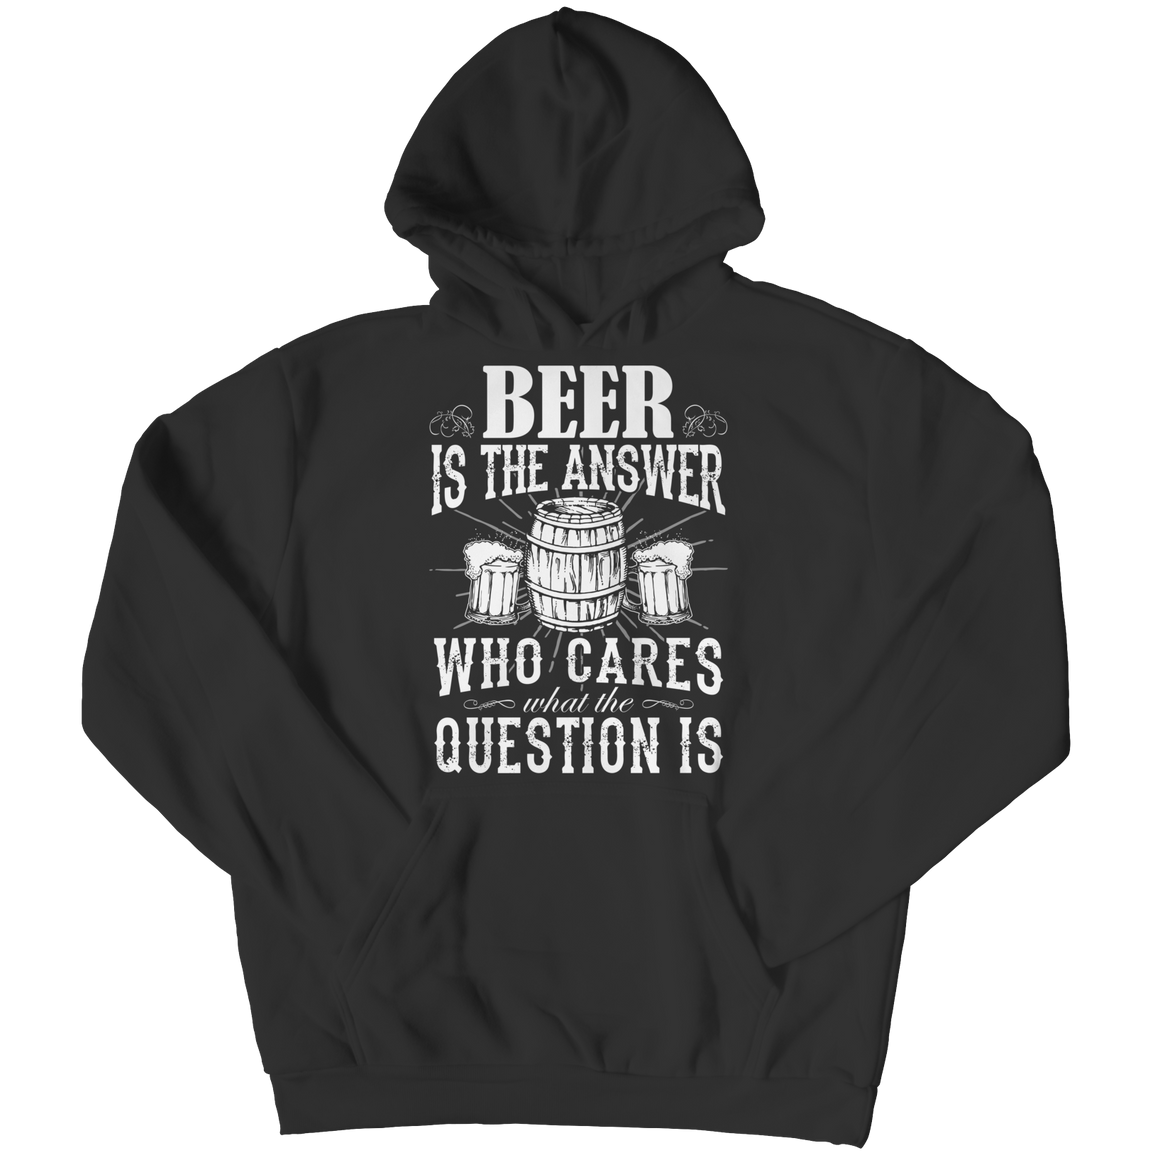 Beer Is the Answer; Who Cares What the Question Is - Limited Edition